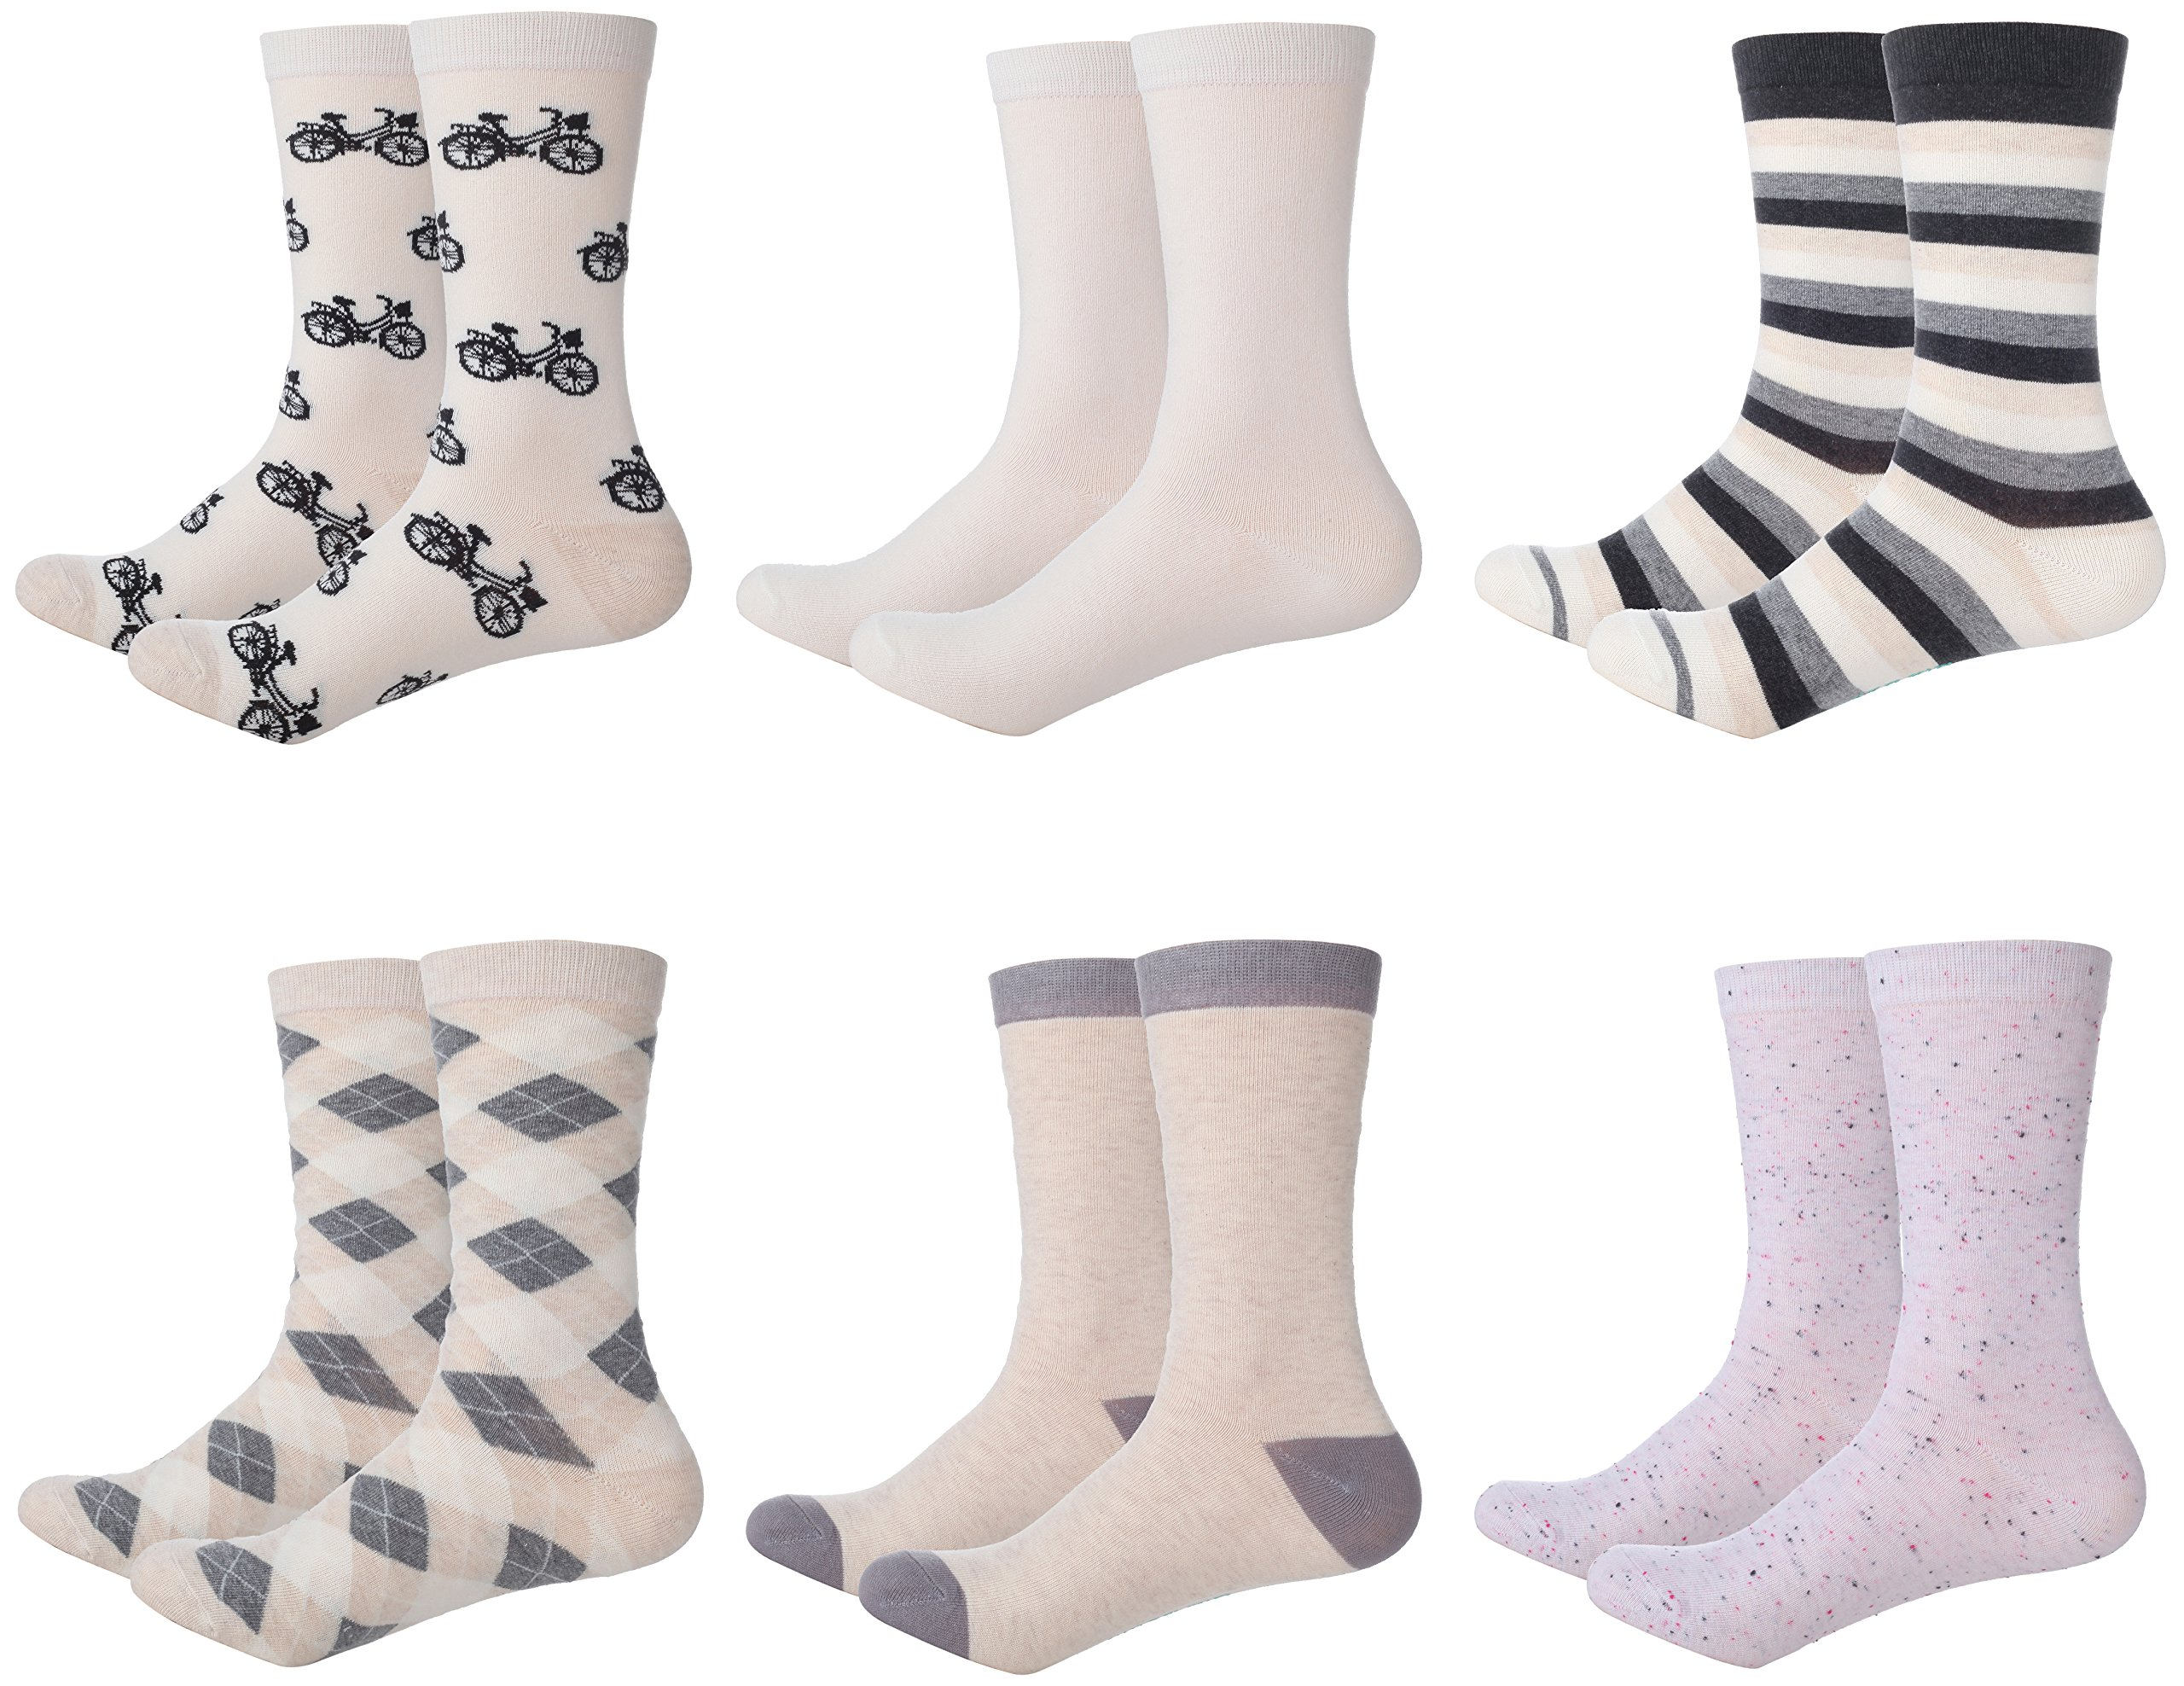 Mio Marino Womens Dress Socks - Colorful Patterned Socks for Women - 6 Pack Style 4-9-11